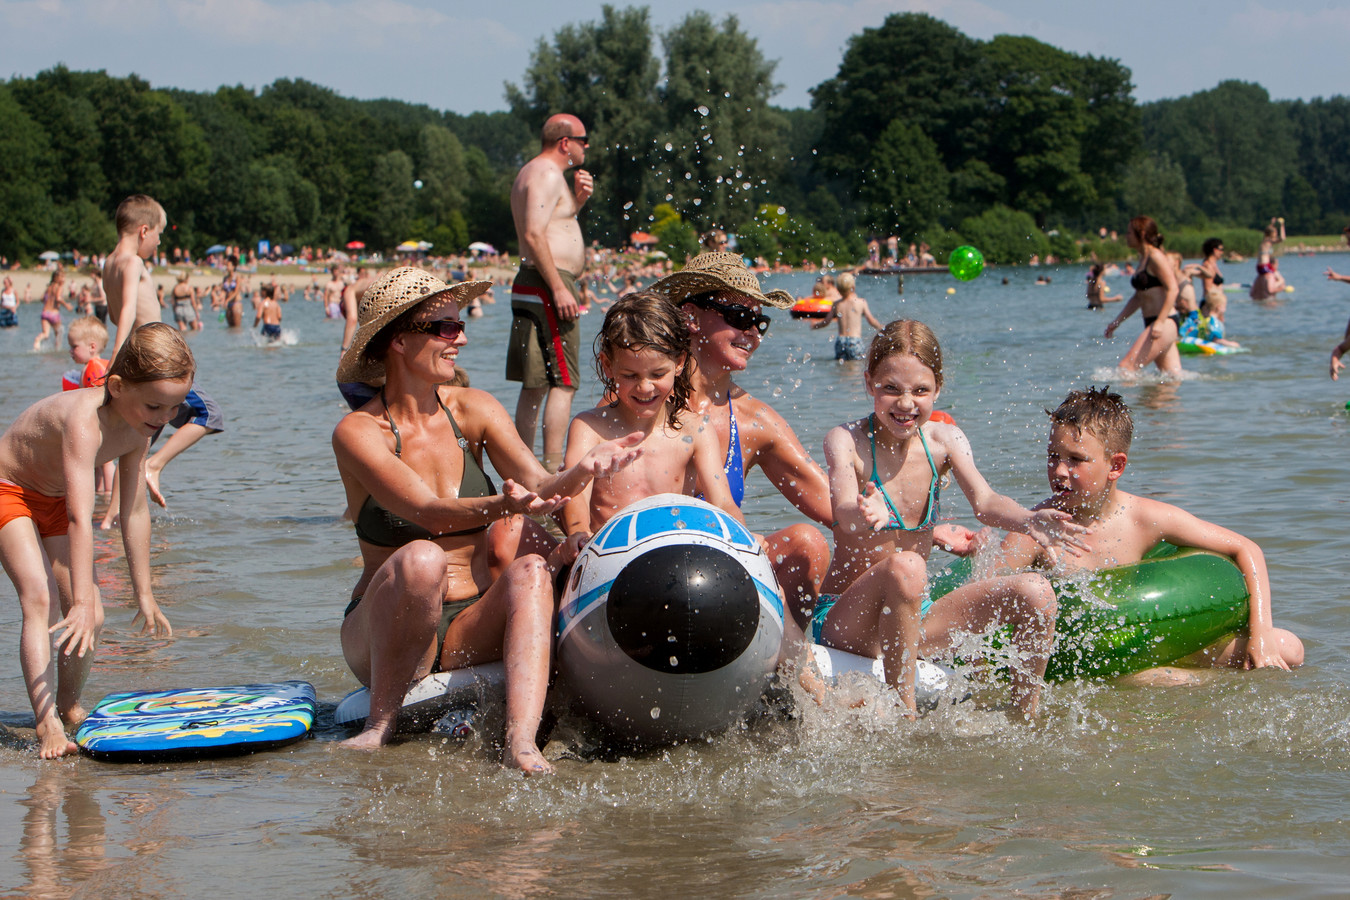 Plezier in recreatieplas Bussloo. (archieffoto)